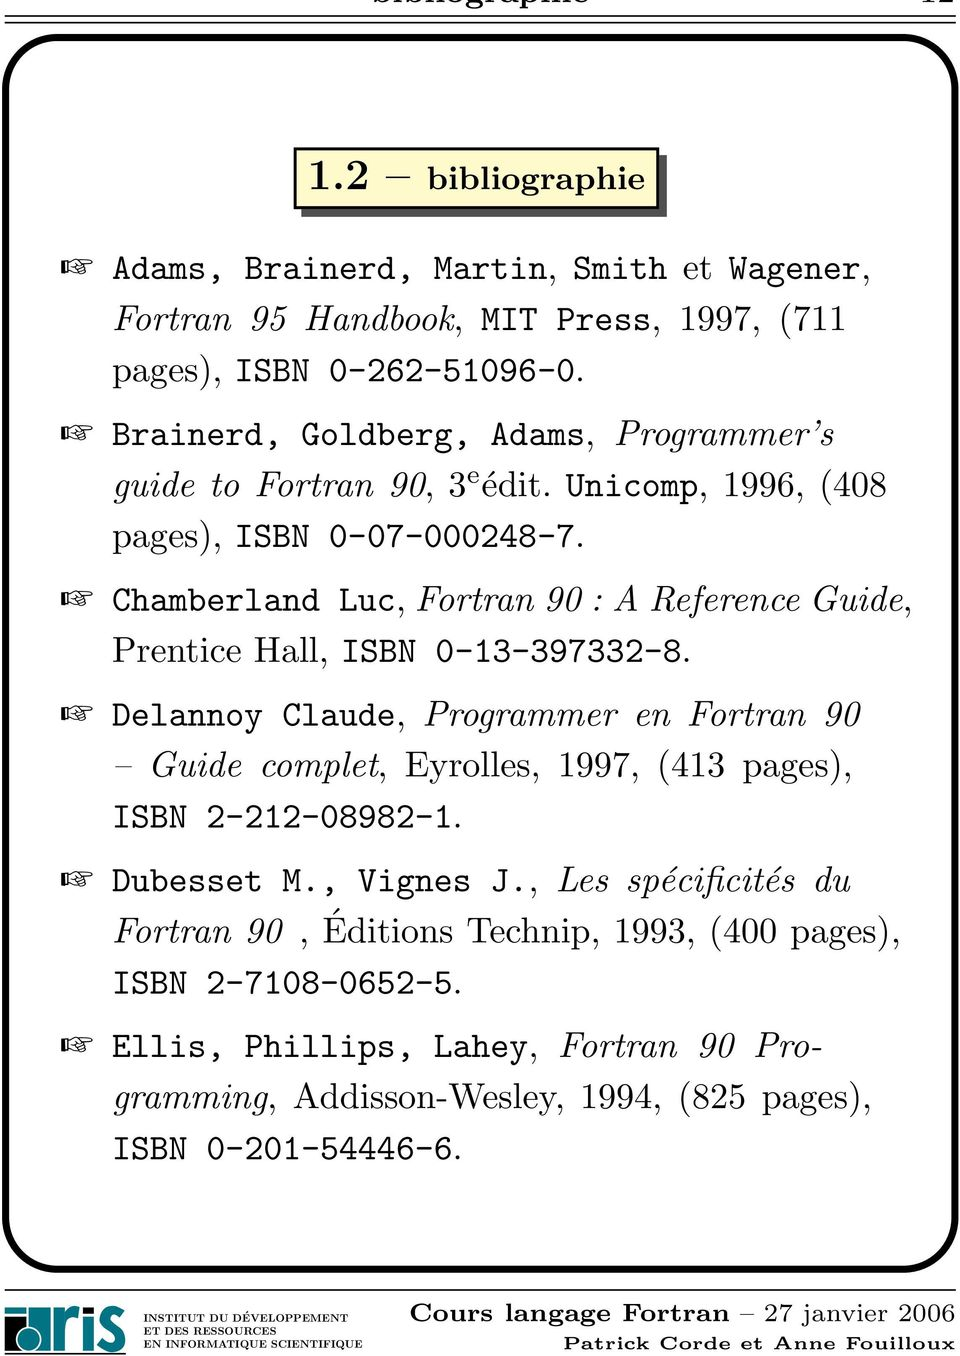 Chamberland Luc, Fortran 90 : A Reference Guide, Prentice Hall, ISBN 0-13-397332-8.